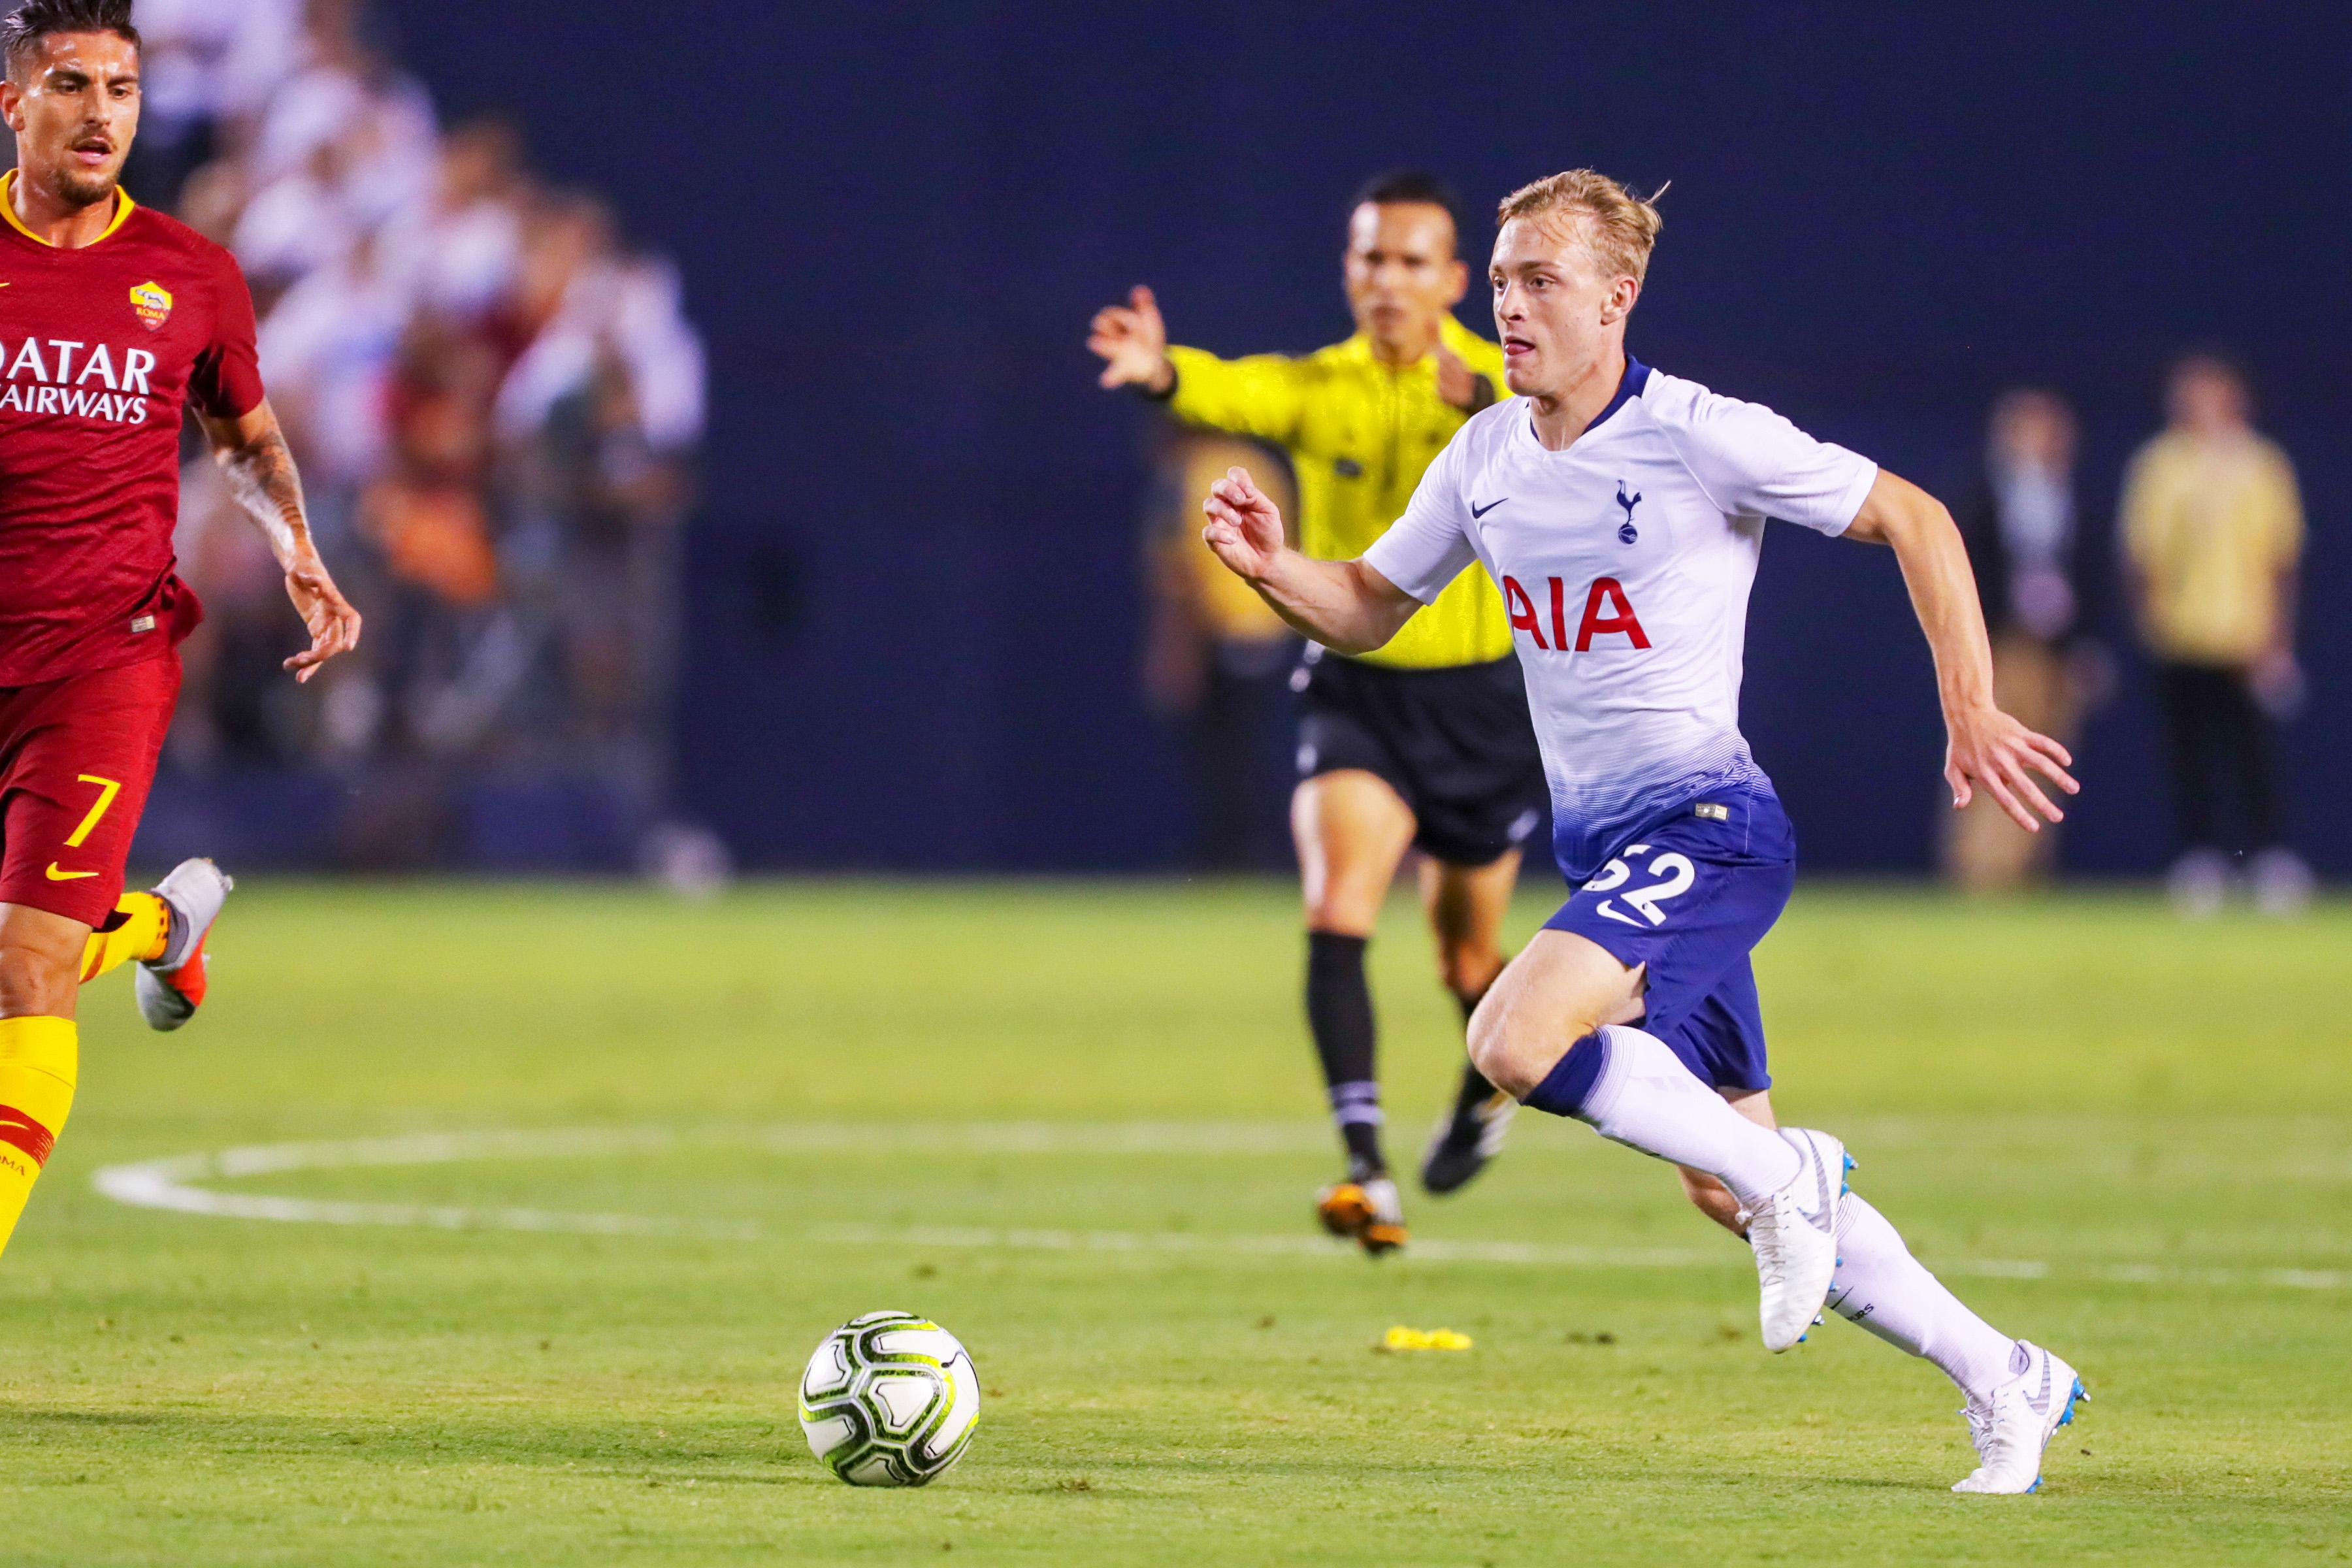 Oliver Skipp has shone for Tottenham so far in pre-season